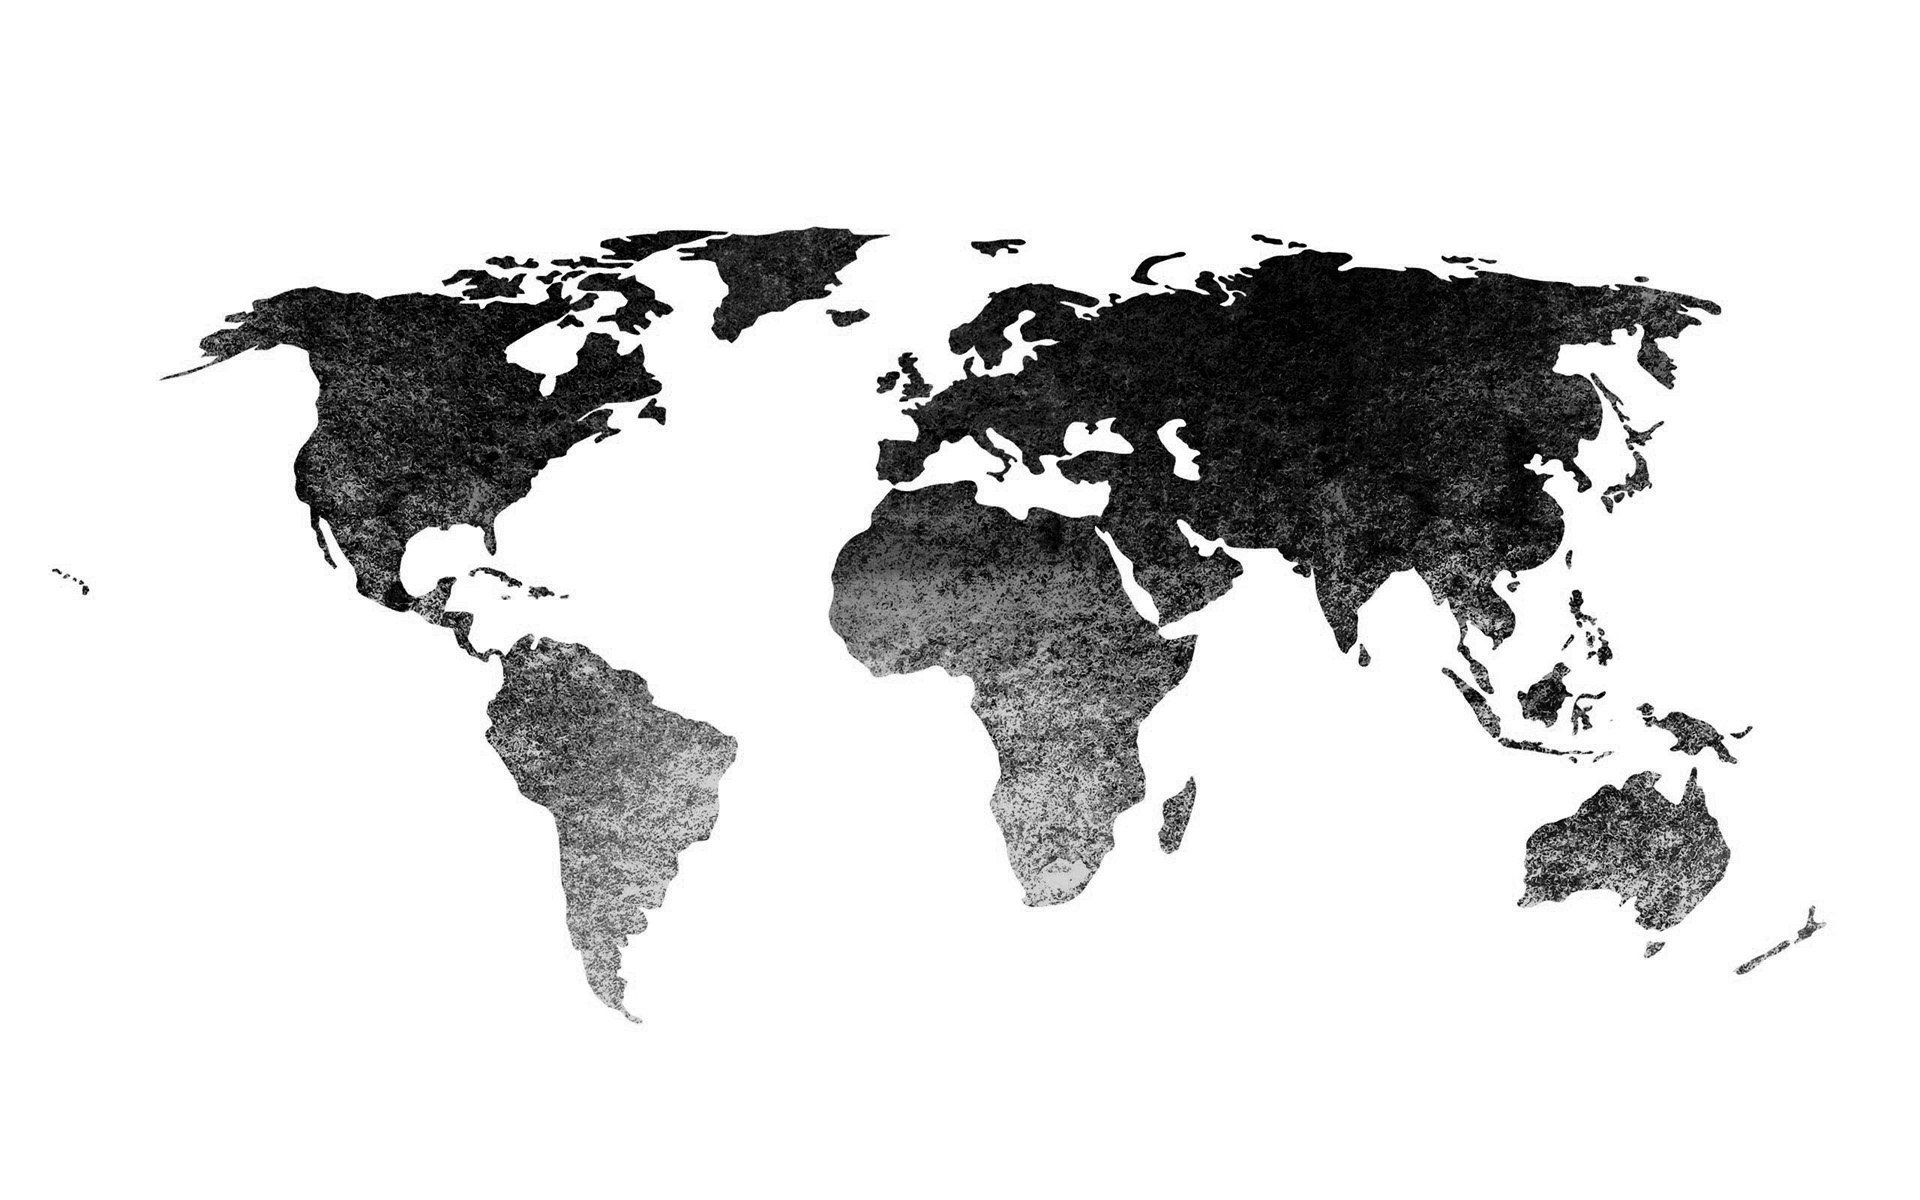 Black world map wallpapers high resolution for free wallpaper black world map wallpapers high resolution for free wallpaper gumiabroncs Choice Image